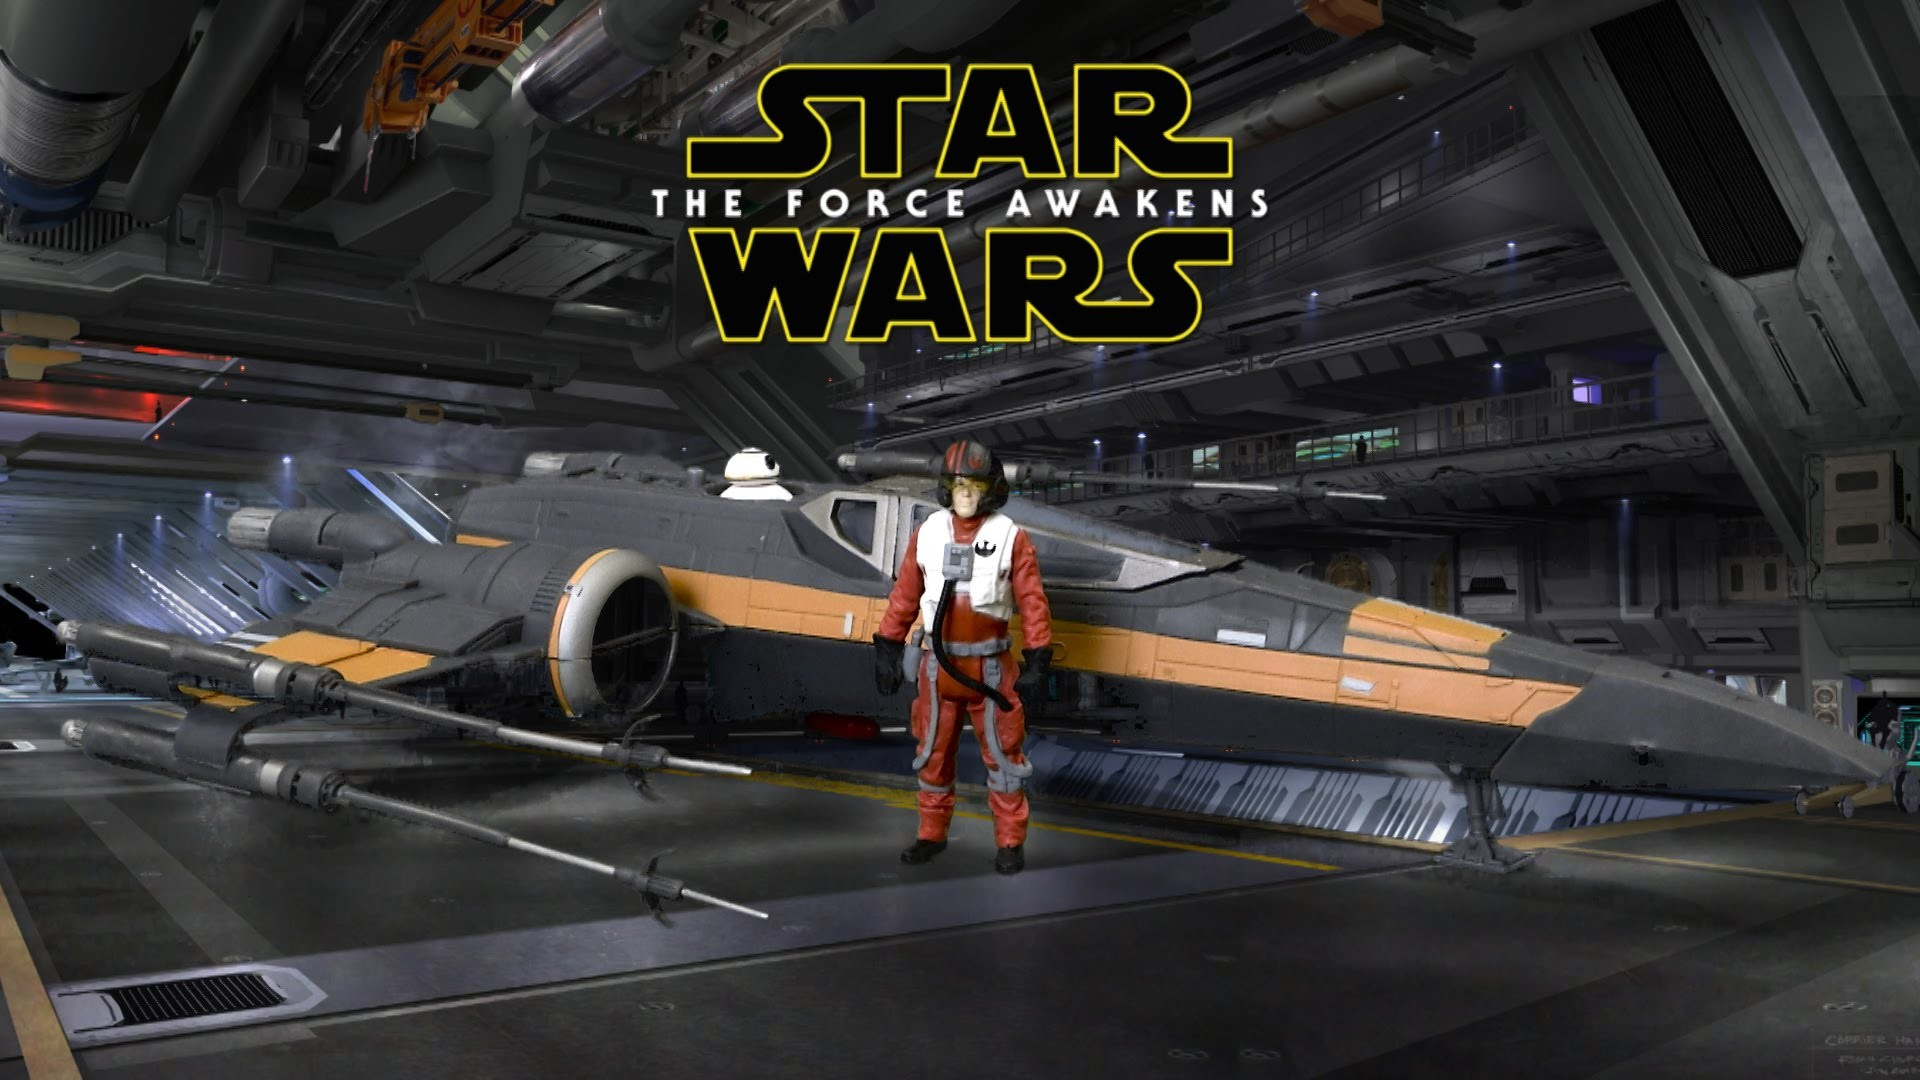 Star Wars The Force Awakens Poe's X-Wing Fighter with Poe Dameron Figure  from Hasbro – YouTube